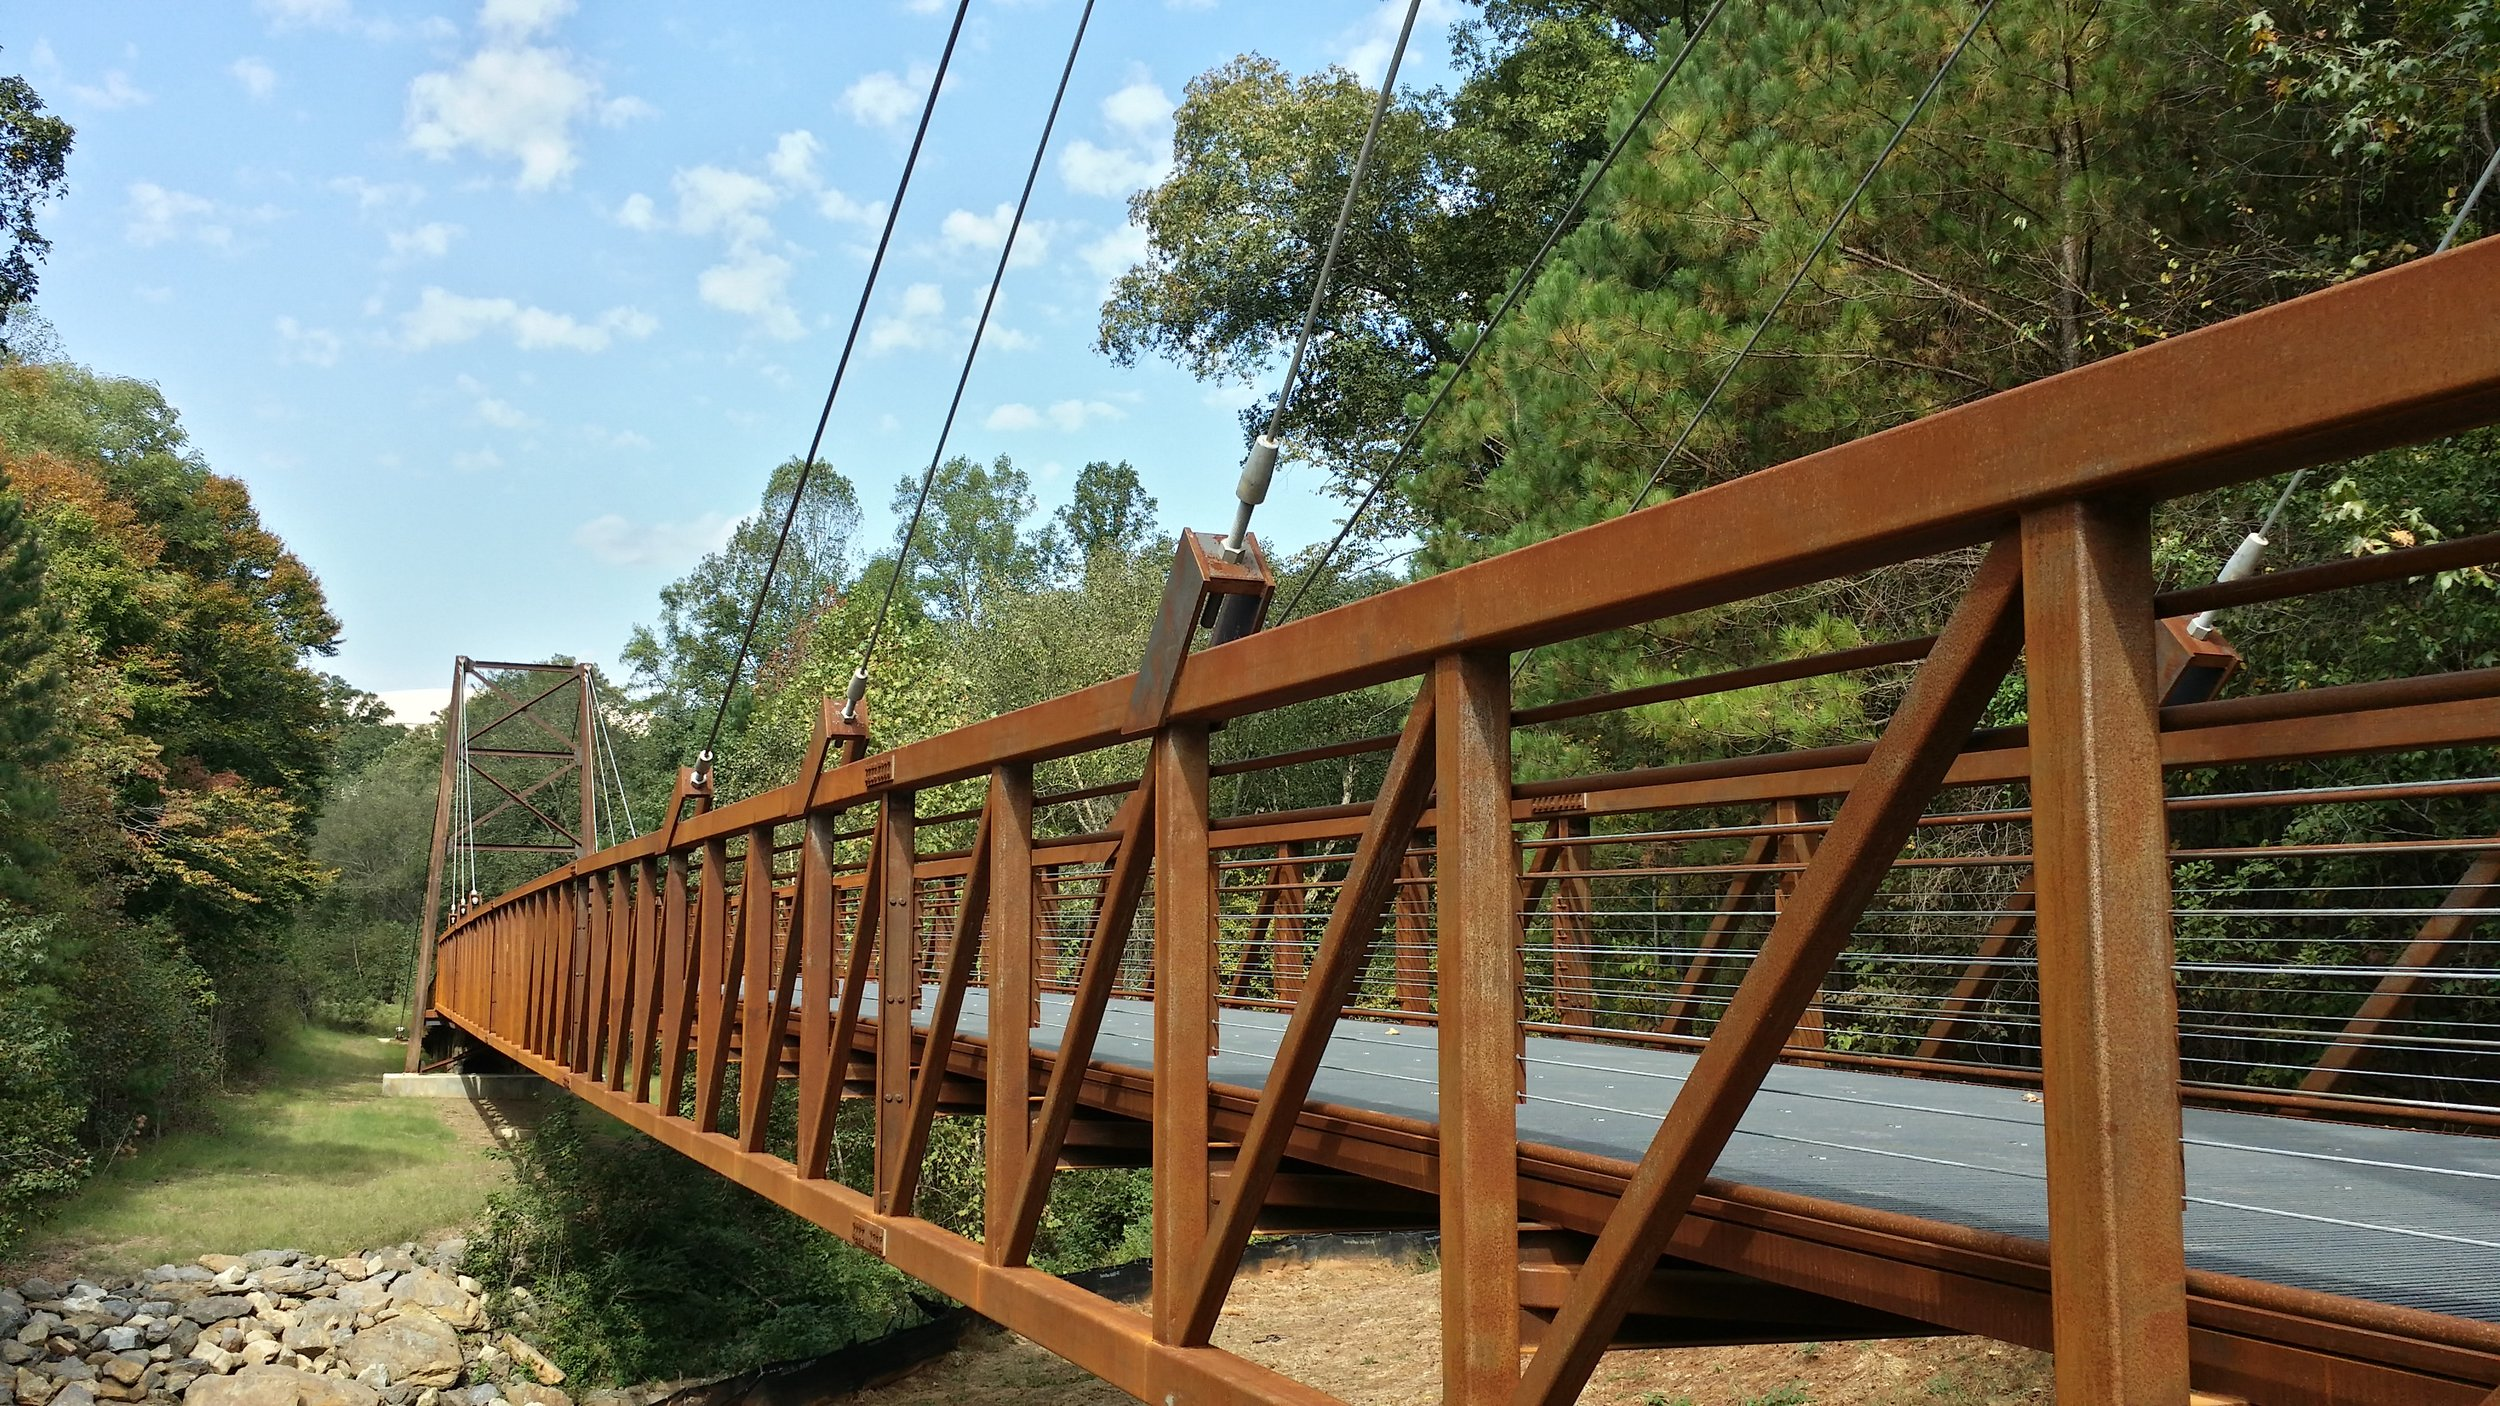 Ivy Creek Greenway - ClientGwinnett County Parks & RecreationLocationBuford, GABrief Project DescriptionAstra completed Ivy Creek Greenway for Gwinnett County from the ground up. The project consisted of asphalt trails and boardwalks for bikes and pedestrians and a beautiful suspension bridge.